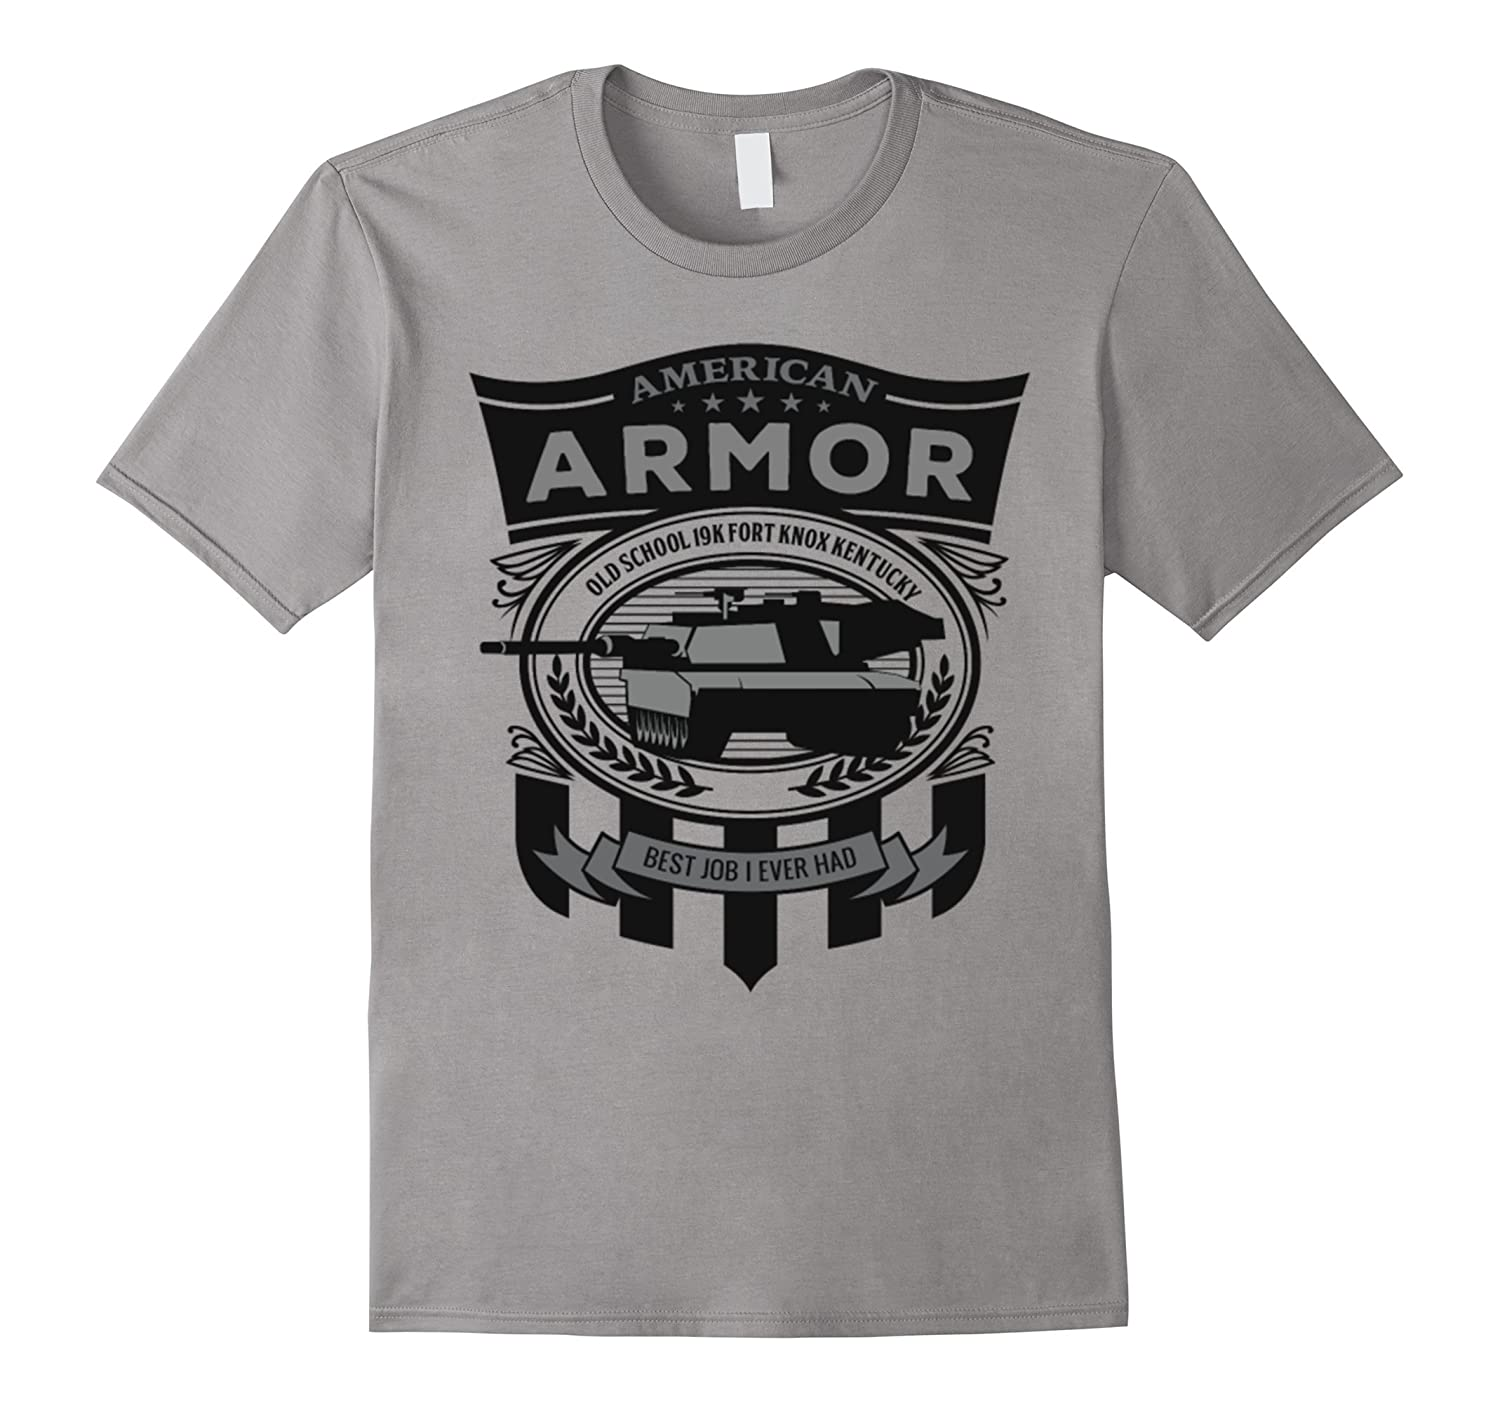 American Armor Old School - Best Job I Ever Had Tshirt-TJ